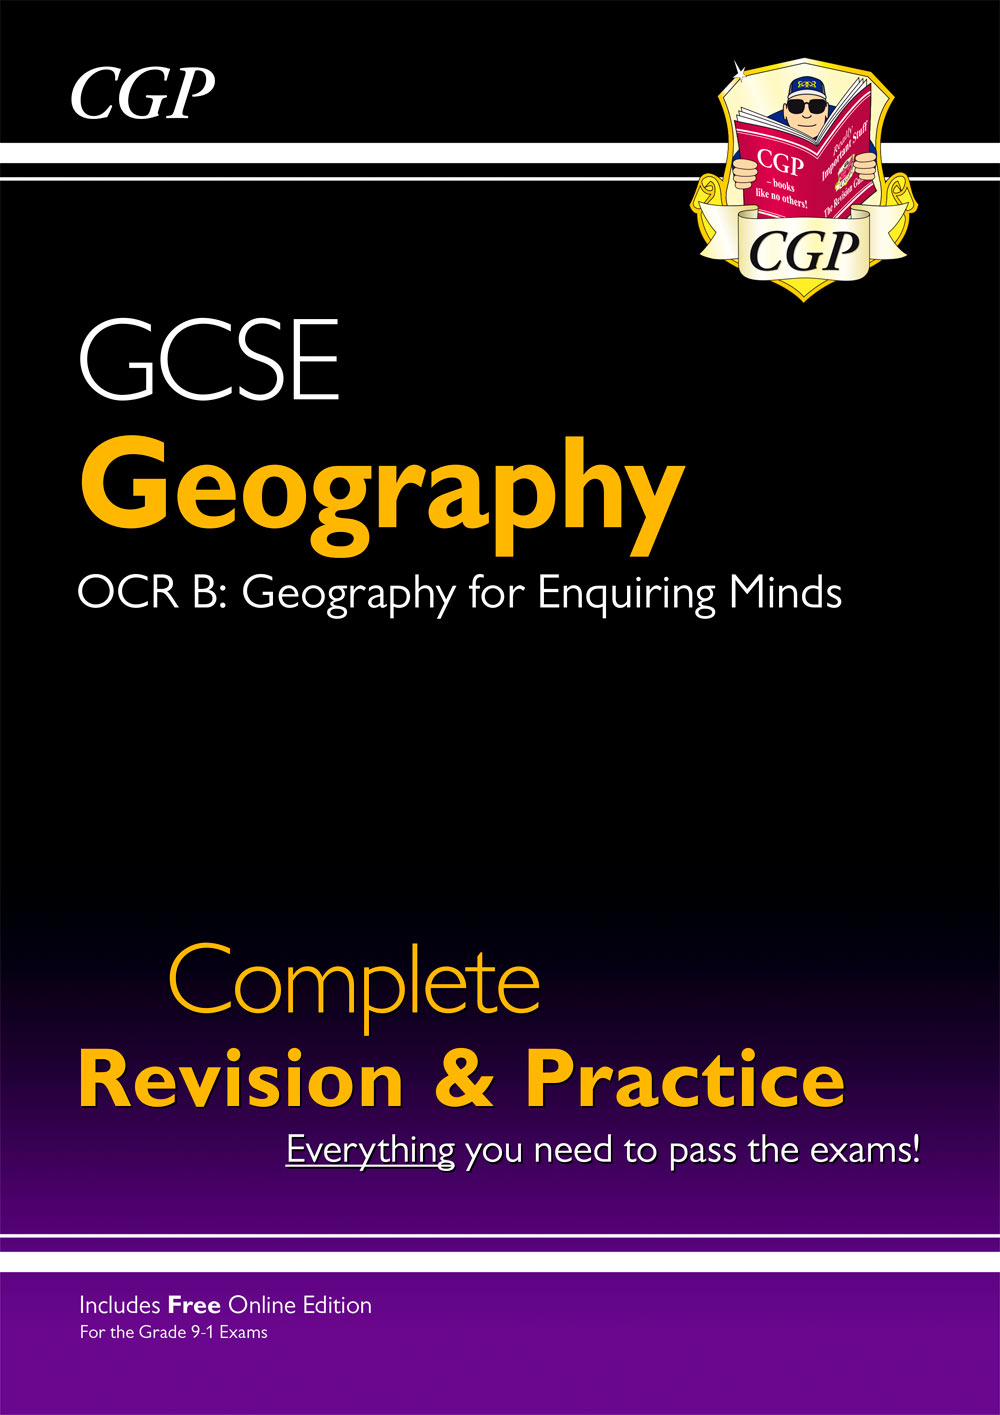 GRS41 - New Grade 9-1 GCSE Geography OCR B Complete Revision & Practice (with Online Edition)